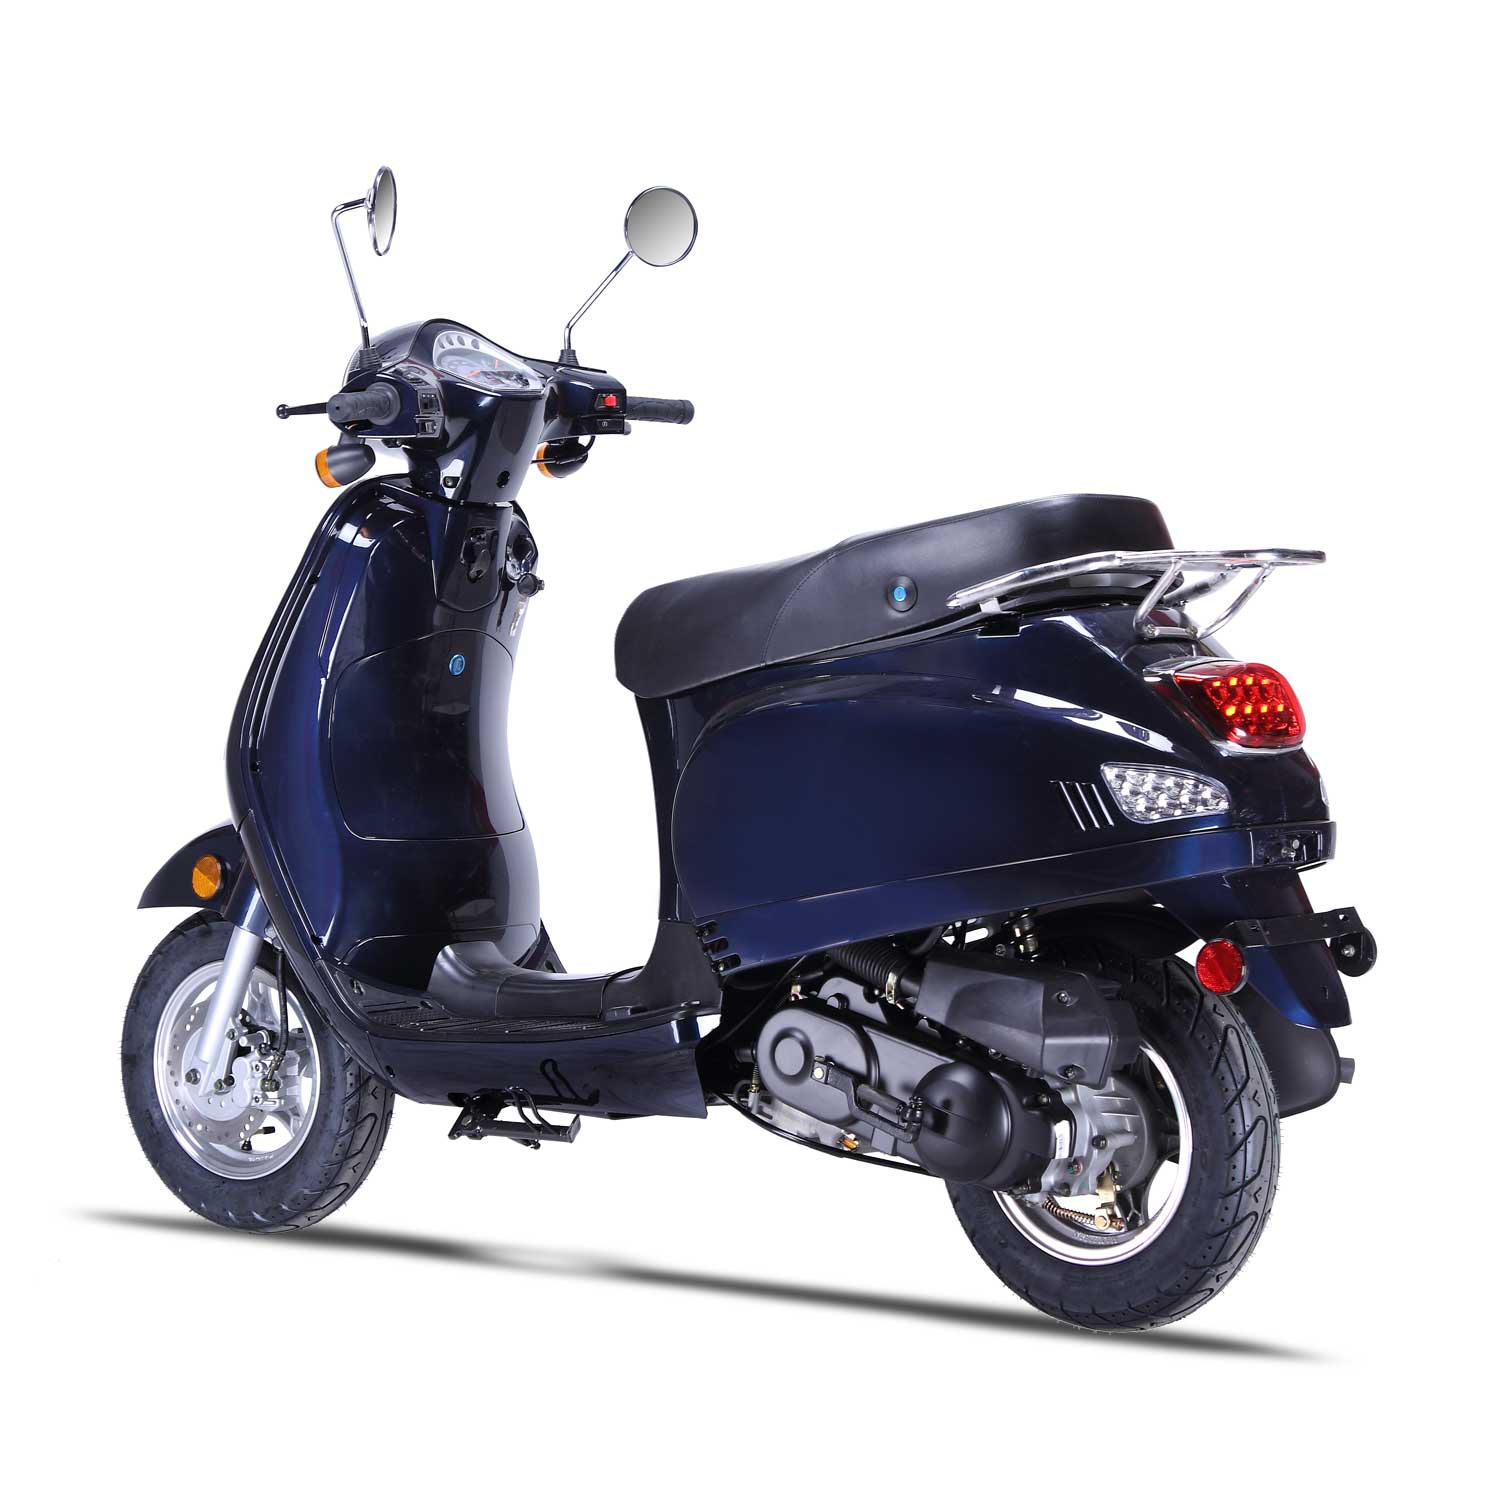 Wolf Lucky Retro 150cc Scooter Extreme Motor Sales Orlando 56 Vespa Wiring Schematic Gas Moped Street Legal 2 Year Warranty